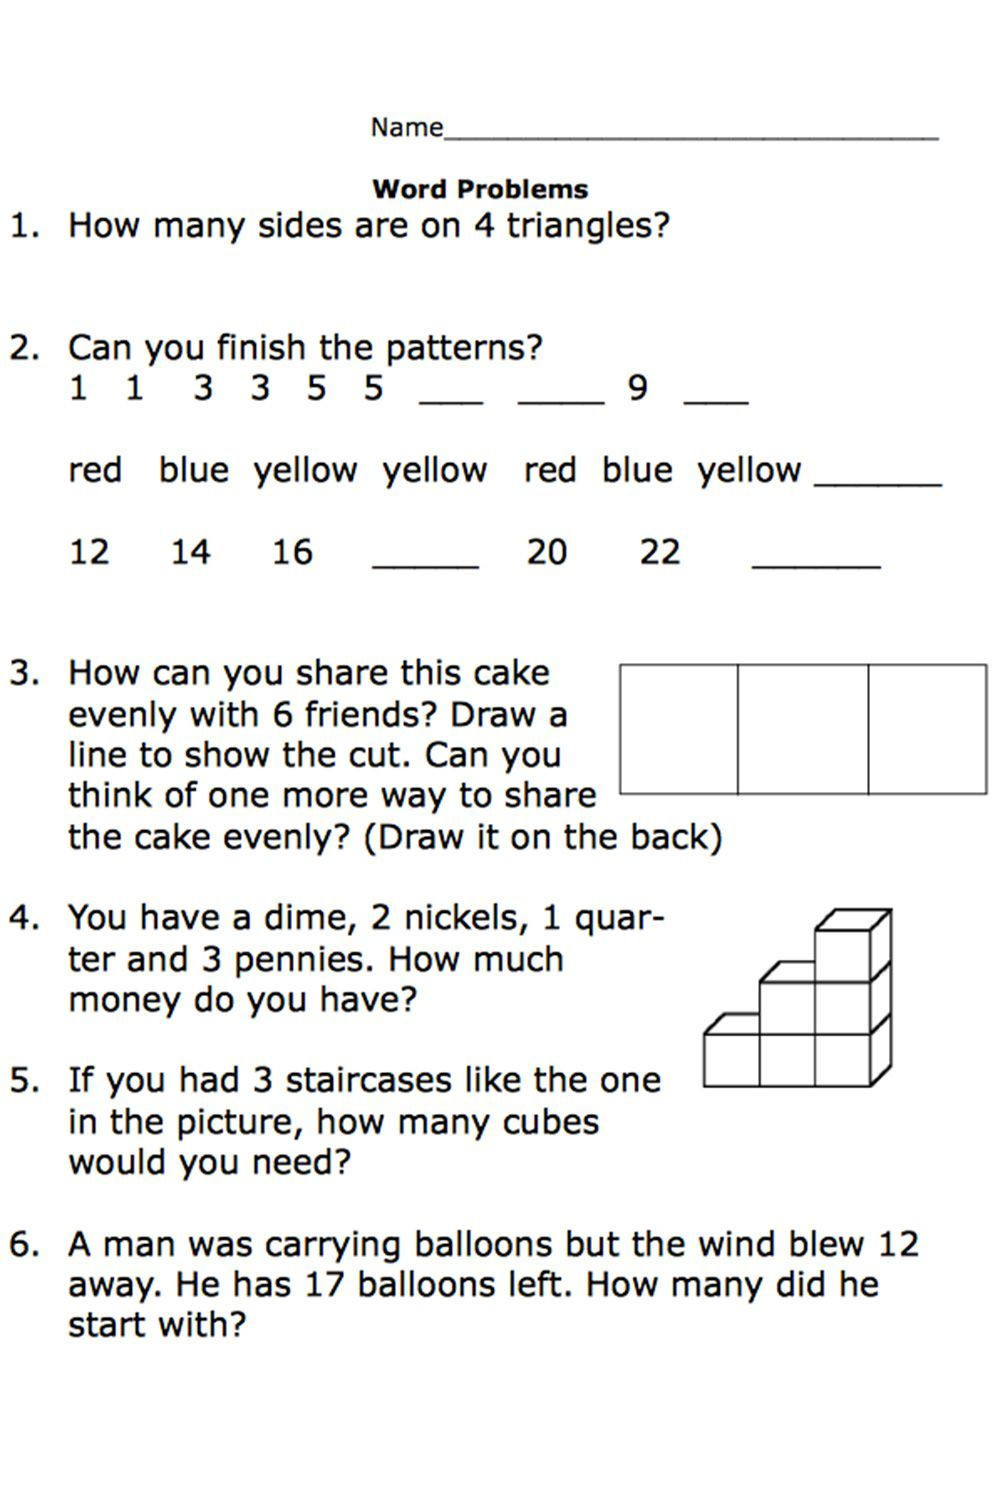 Making Predictions Worksheets 2nd Grade Money Math Worksheets 2nd Grade